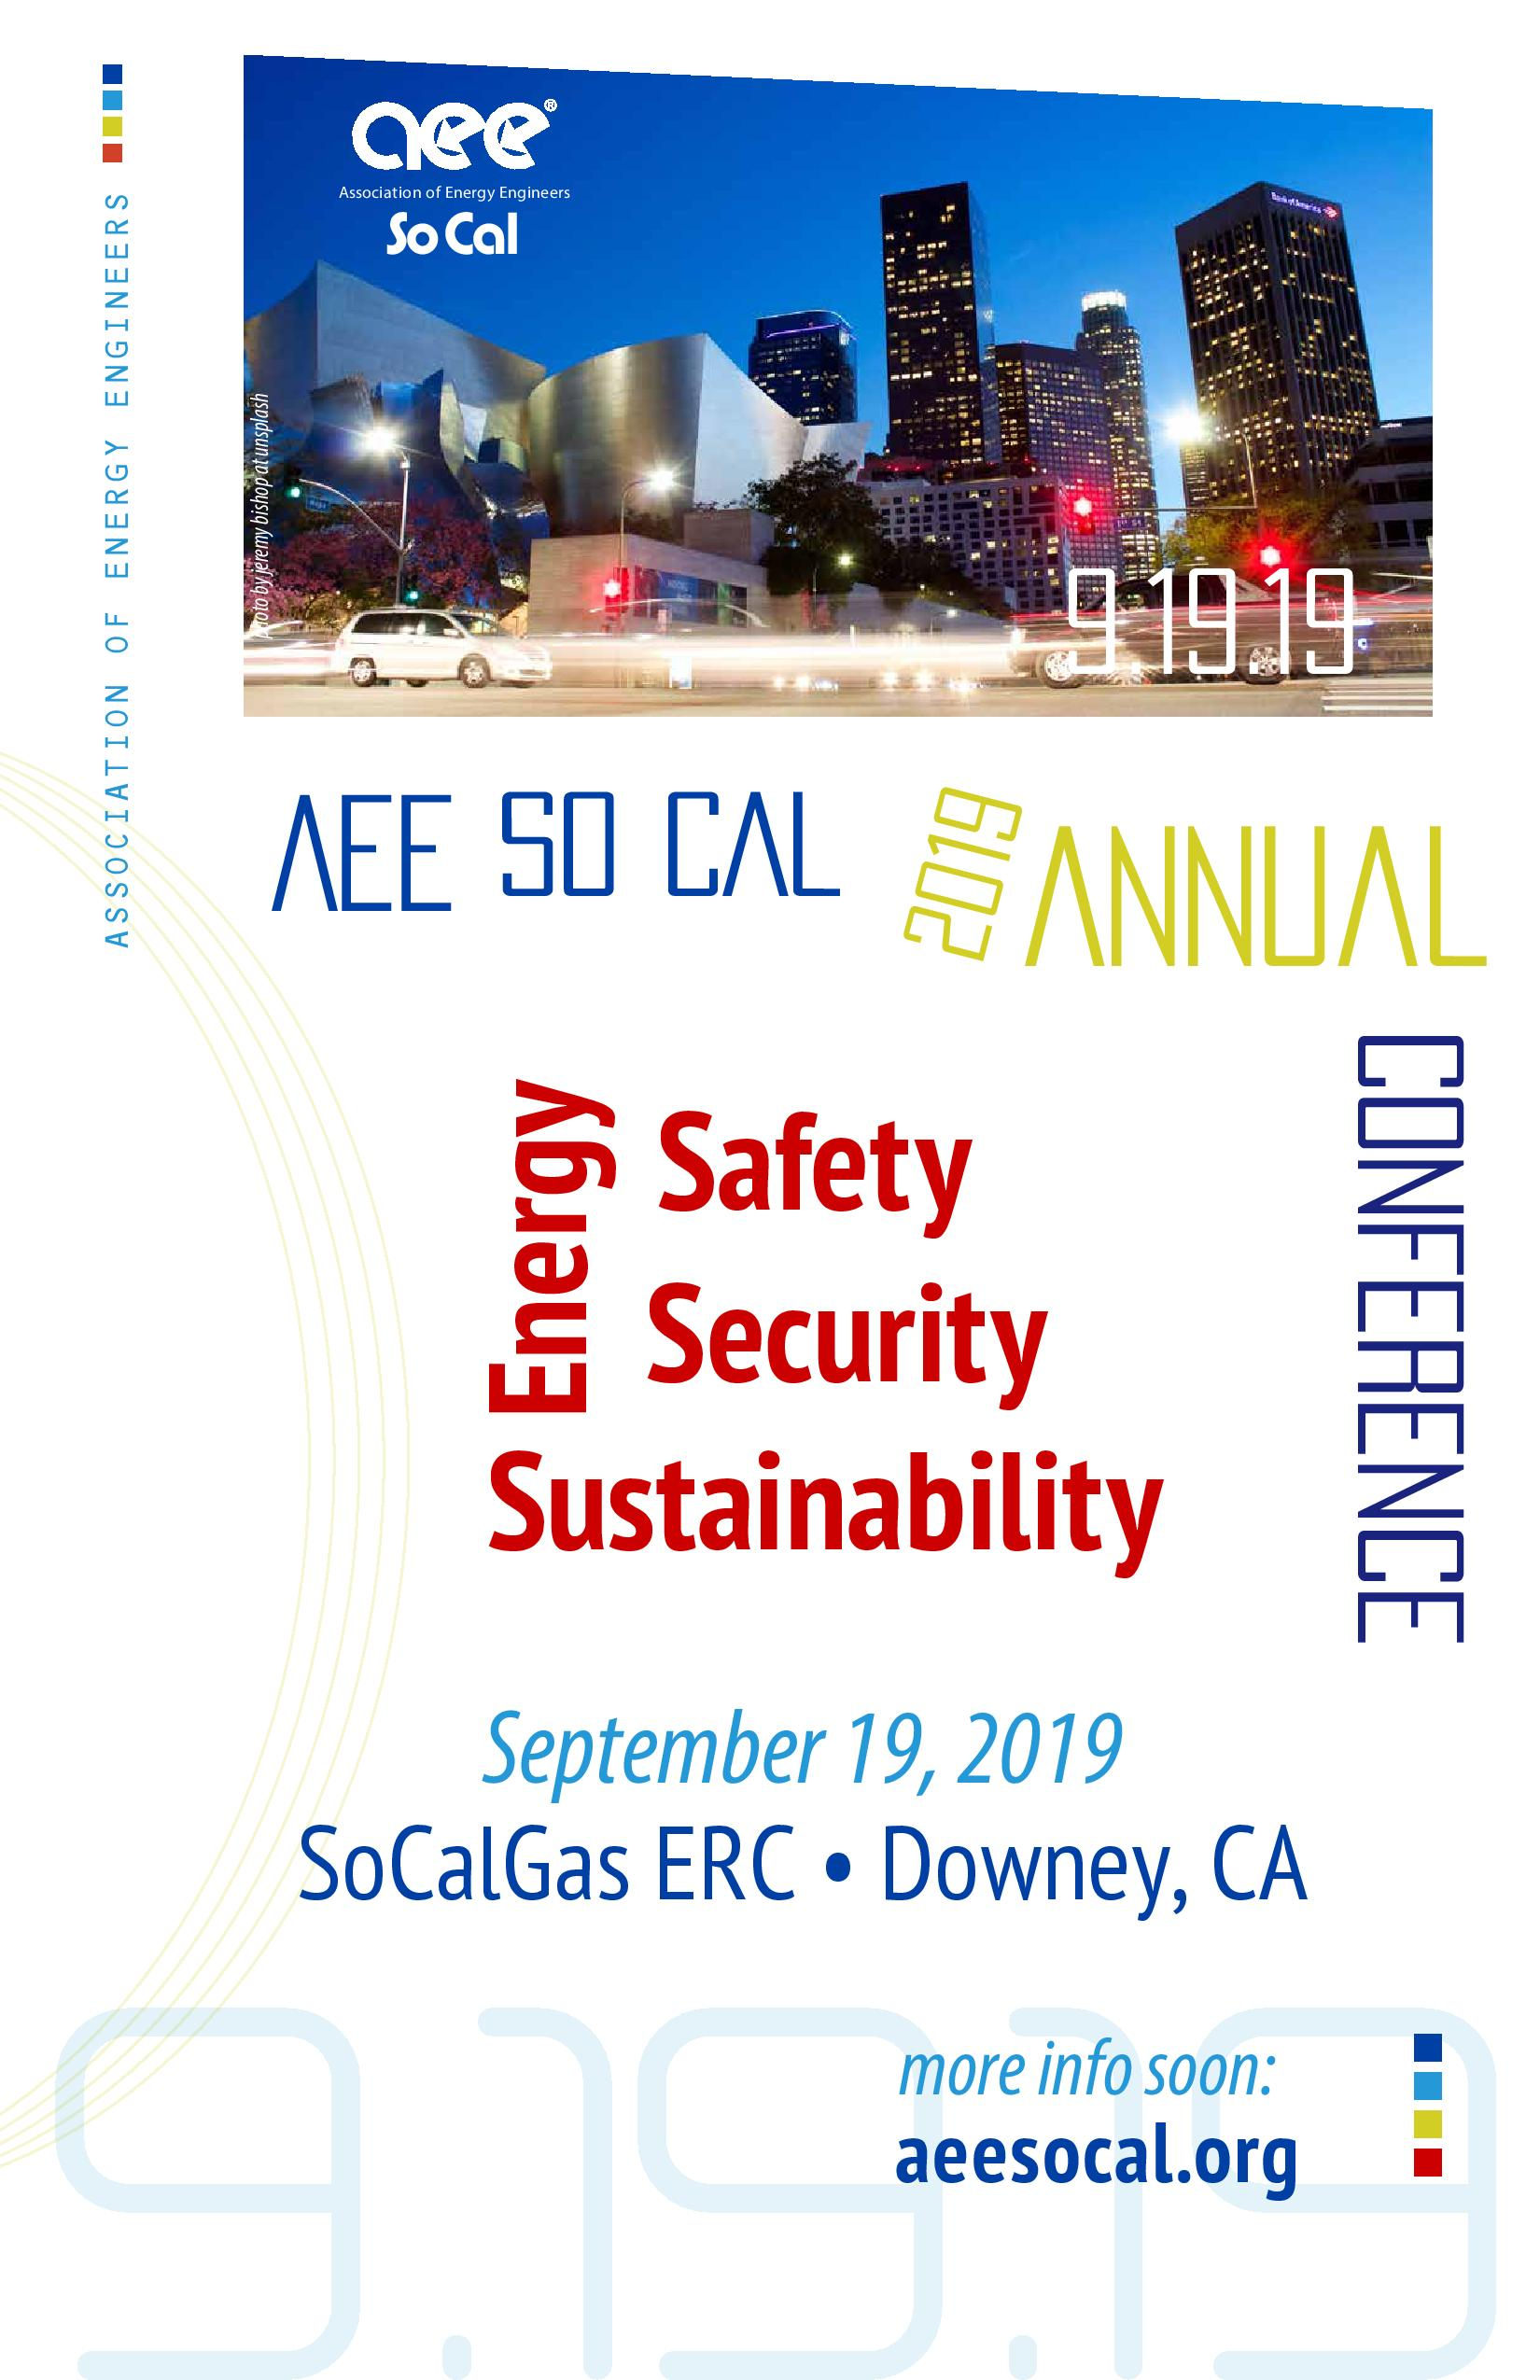 aee-2019-annual-conference-page-001.jpg